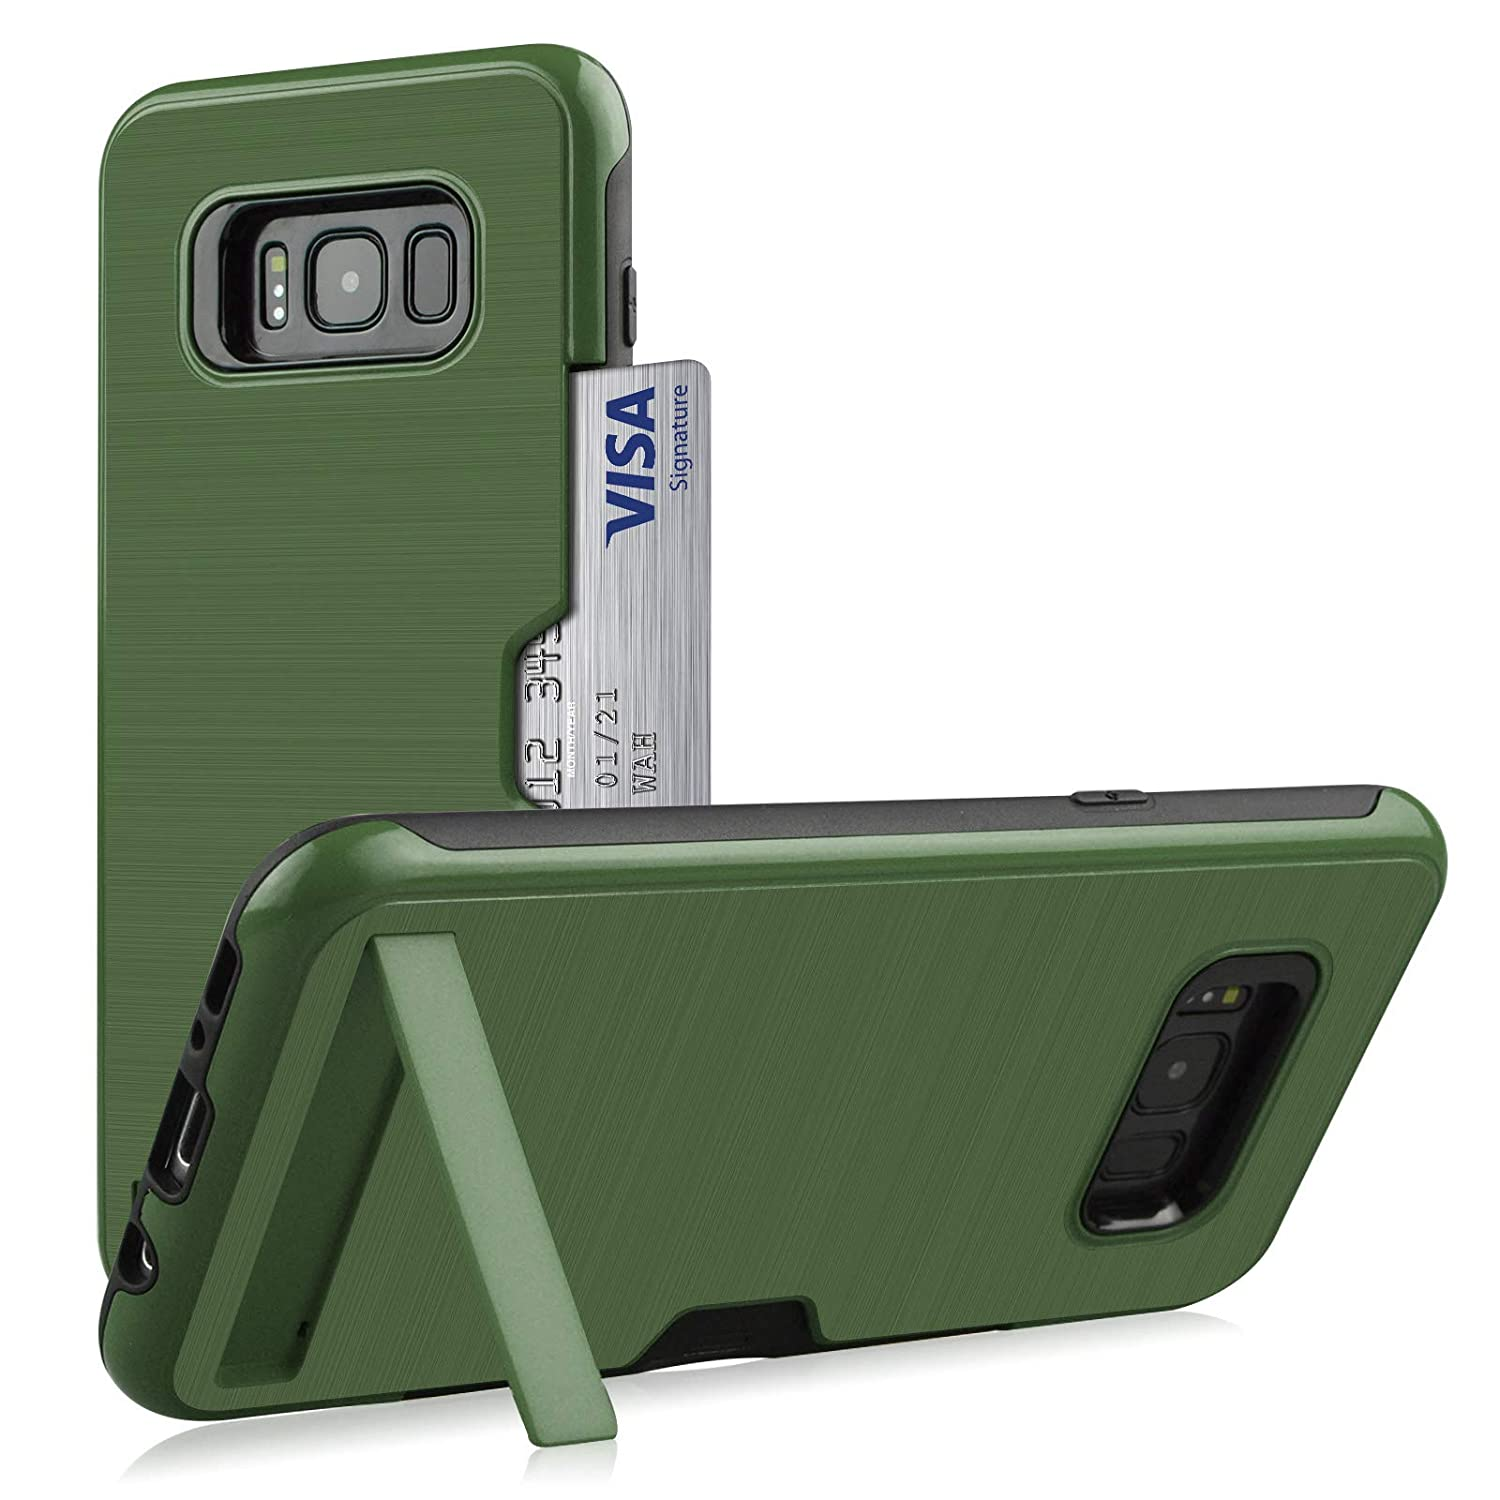 -Army Green 2017 Galaxy S8 Plus Case,DAMONDY Kickstand Ultra Thin Dual Layer Shock Protective Rugged Armor Hybrid PC+Soft TPU Heavy Duty Protection Card Slot Holder Cover Case for Galaxy S8 Plus